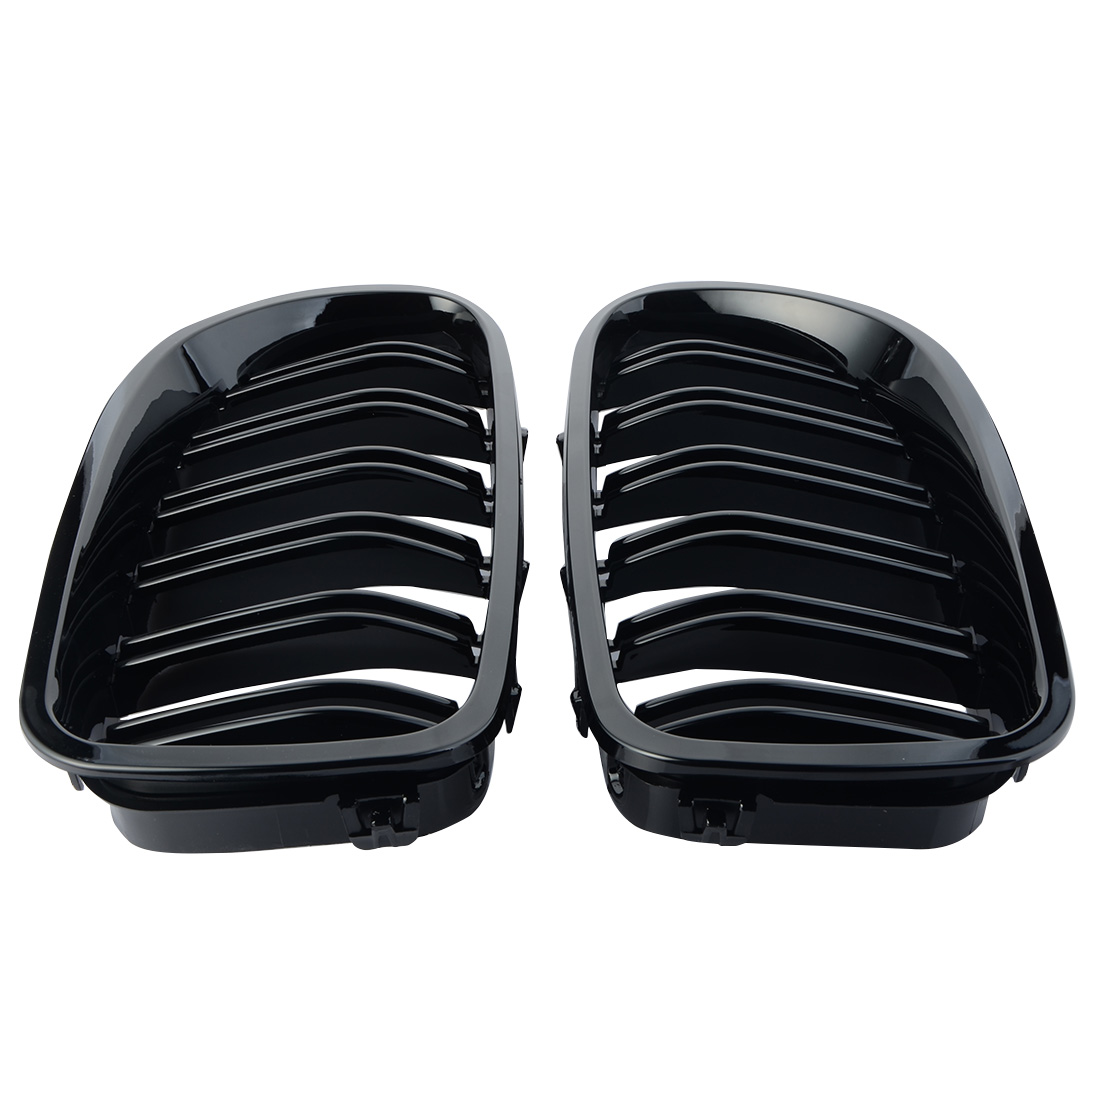 1 pair Car Style One Pair Front Gloss Black Racing Grilles for BMW F18 F10 2010-2014 колонки acoustic energy compact one gloss black